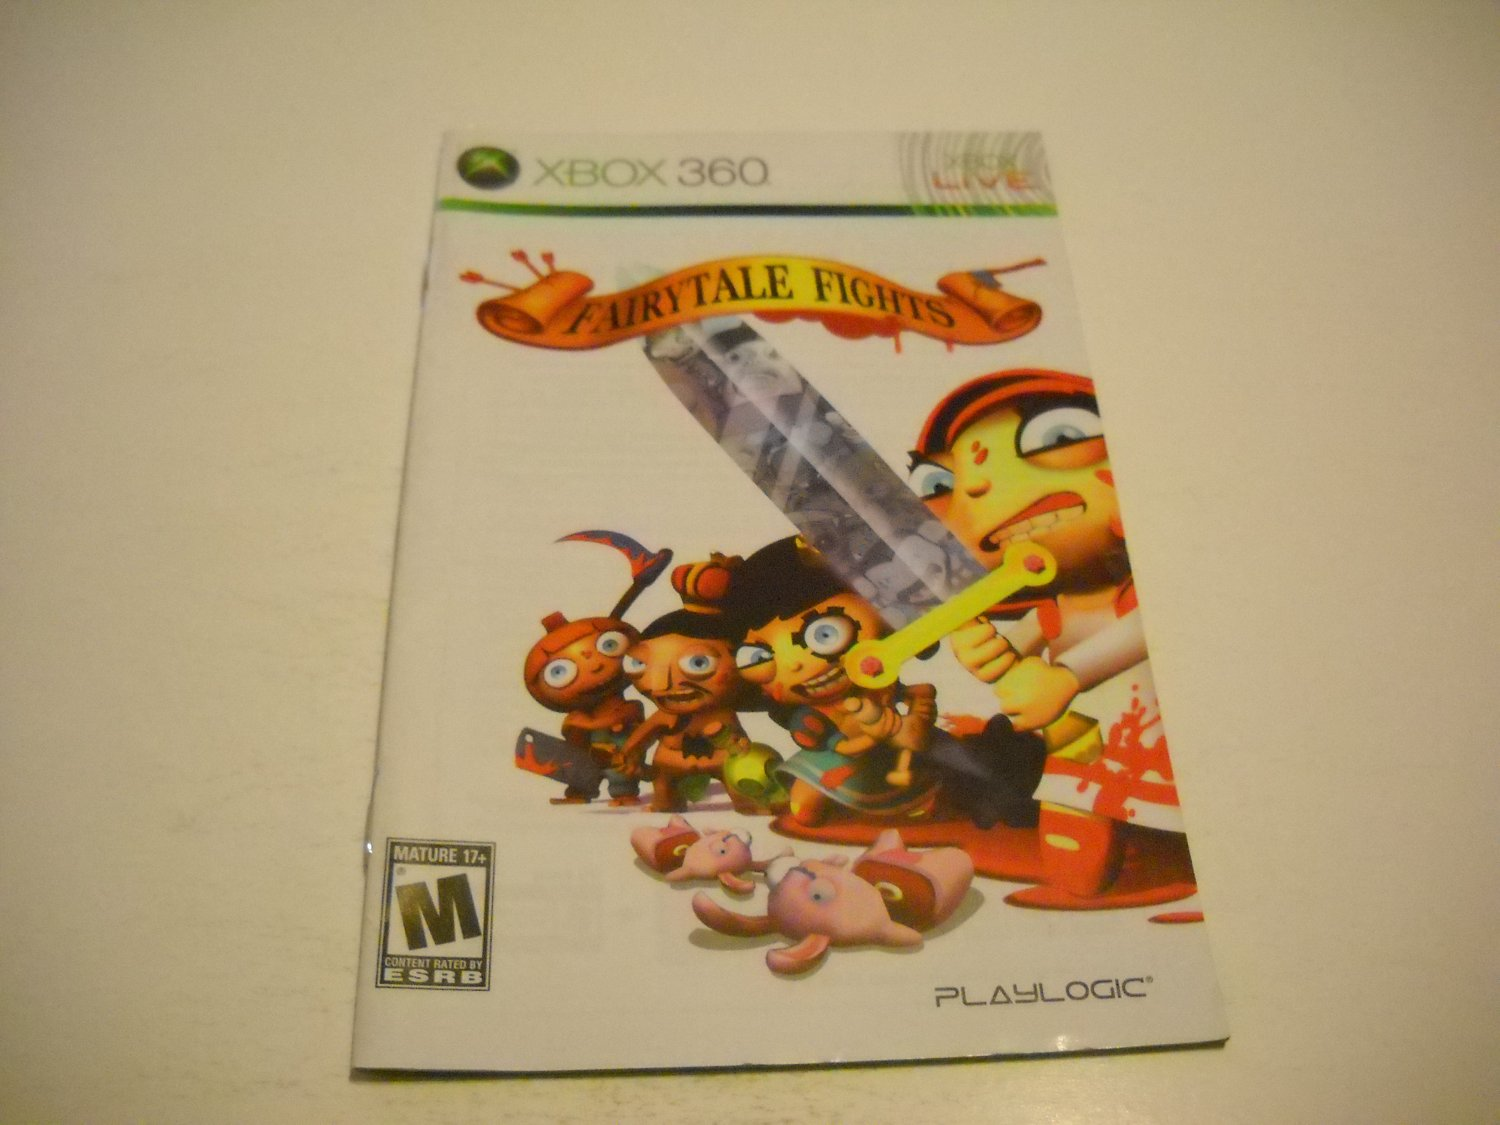 Manual ONLY ~  for Fairytale Fights   - Xbox 360 Instruction Booklet